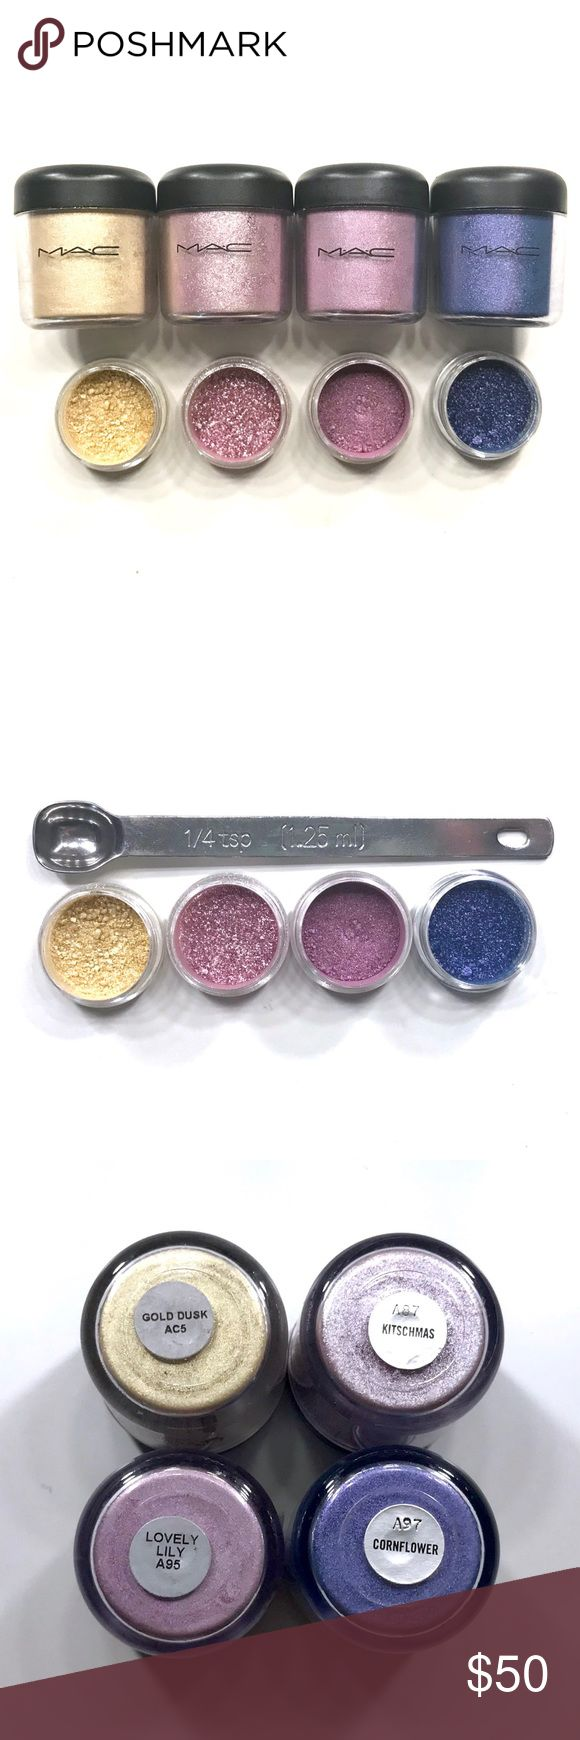 💜Pre Black Friday MAC Pigment Sample Set💜 You'll receive 1/4 Teaspoon of each pigment;  1.  Gold Dusk  2. Kitschmas  3. Lovely Lilly 4. Cornflower                                                                                 Pigments come in 3g BPA Free jars with 1/4 teaspoon of each color and a handwritten label on bottom. MAC Cosmetics Makeup Eyeshadow